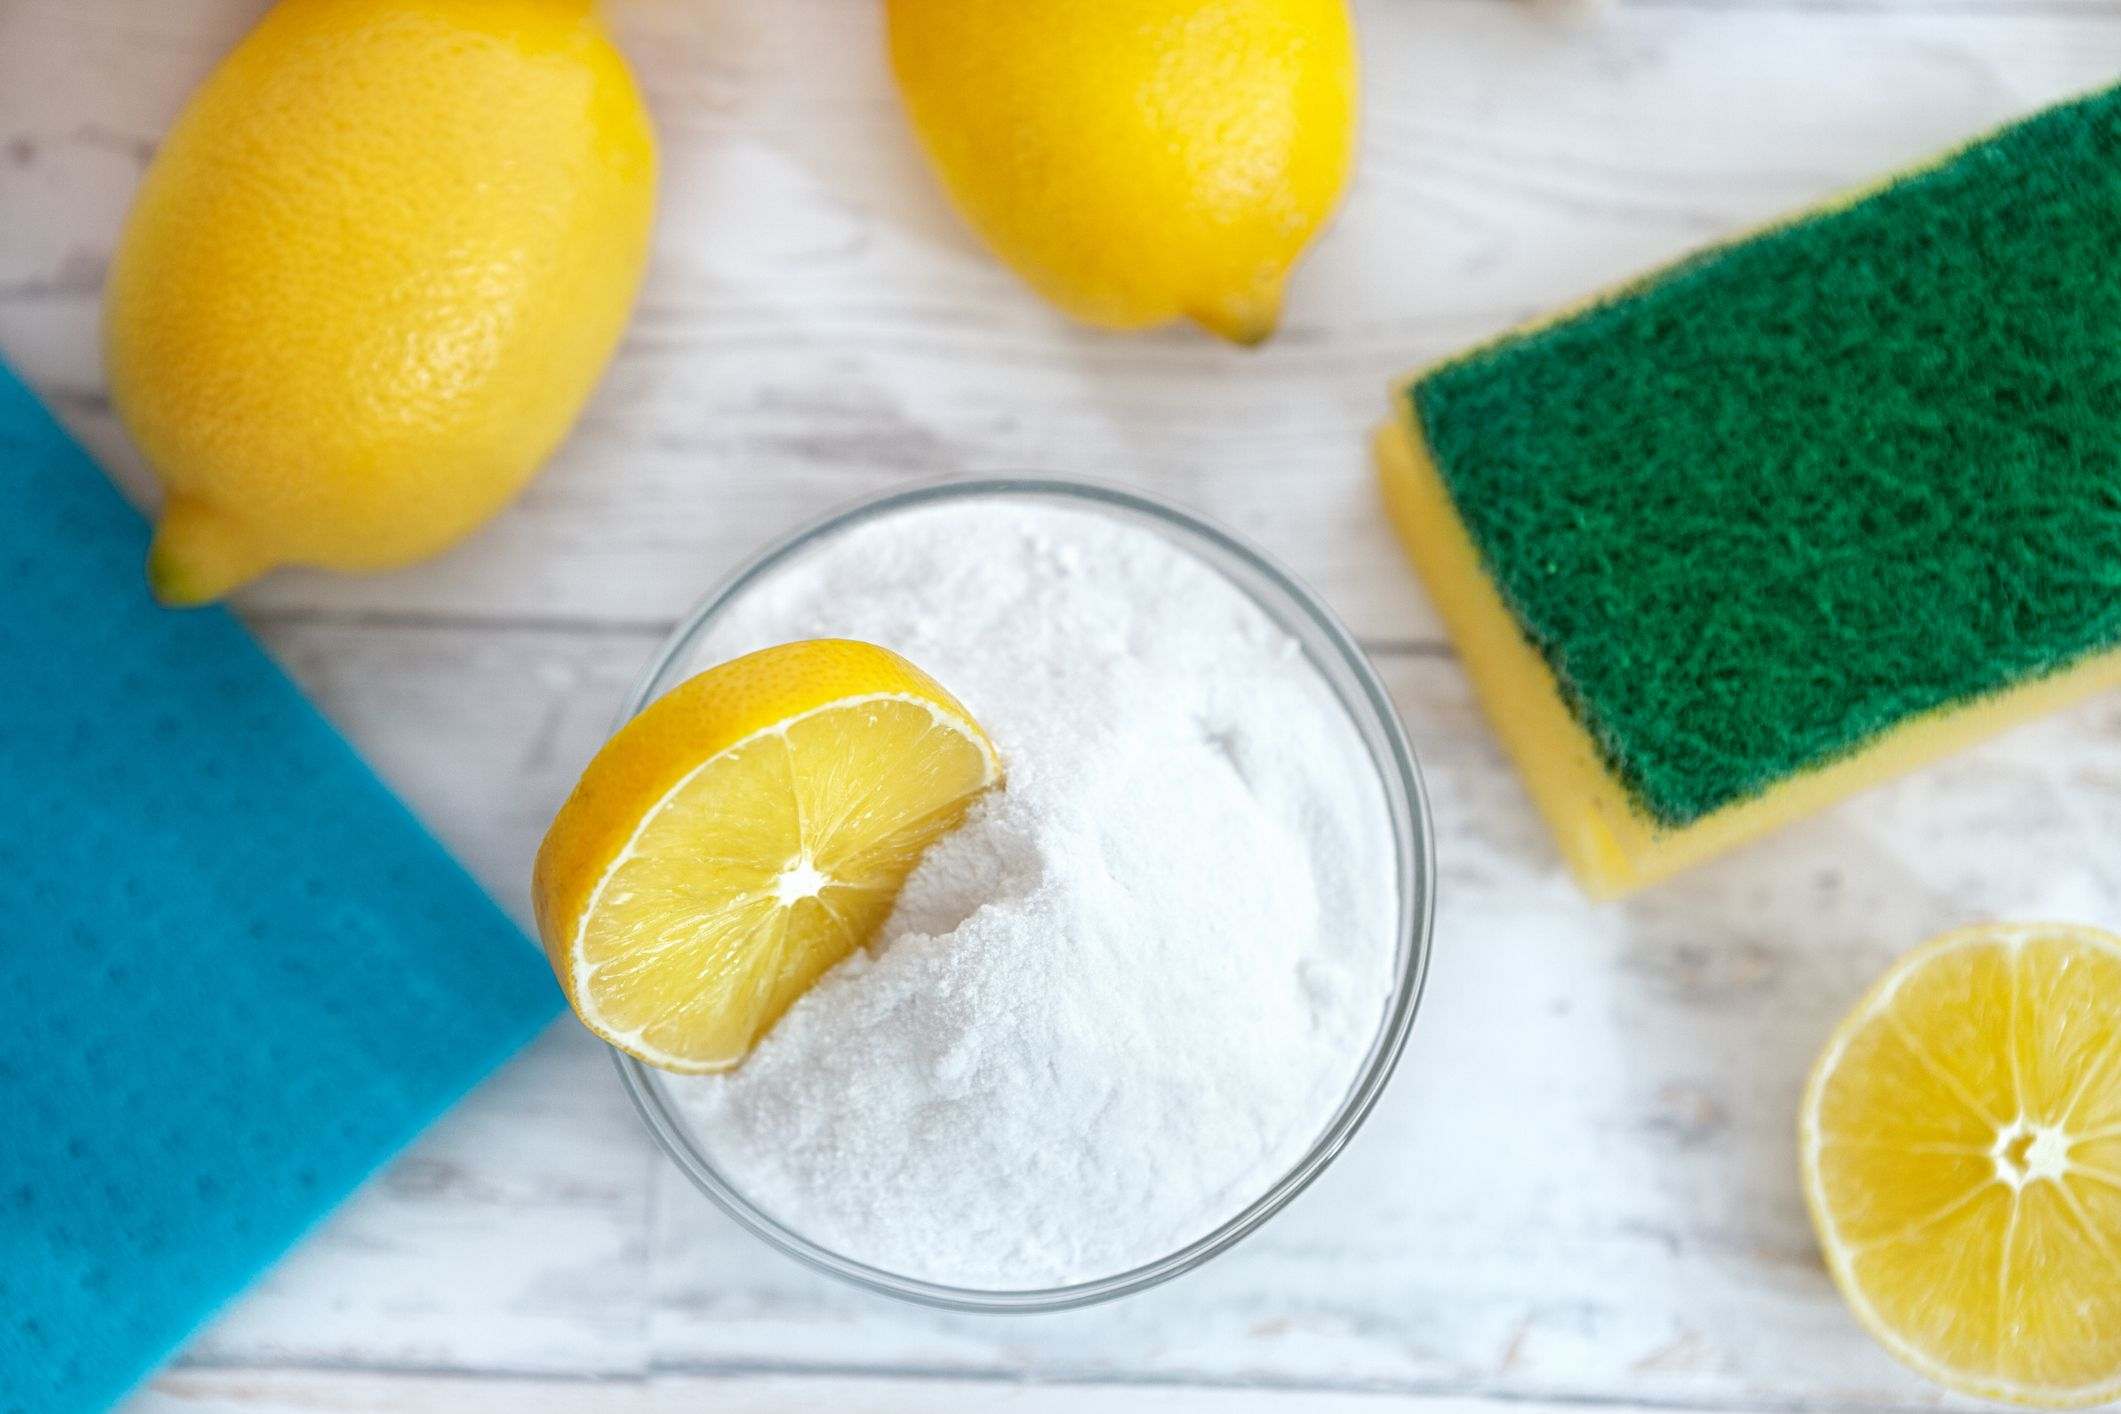 Ingredients For Homemade Cleaning Recipes